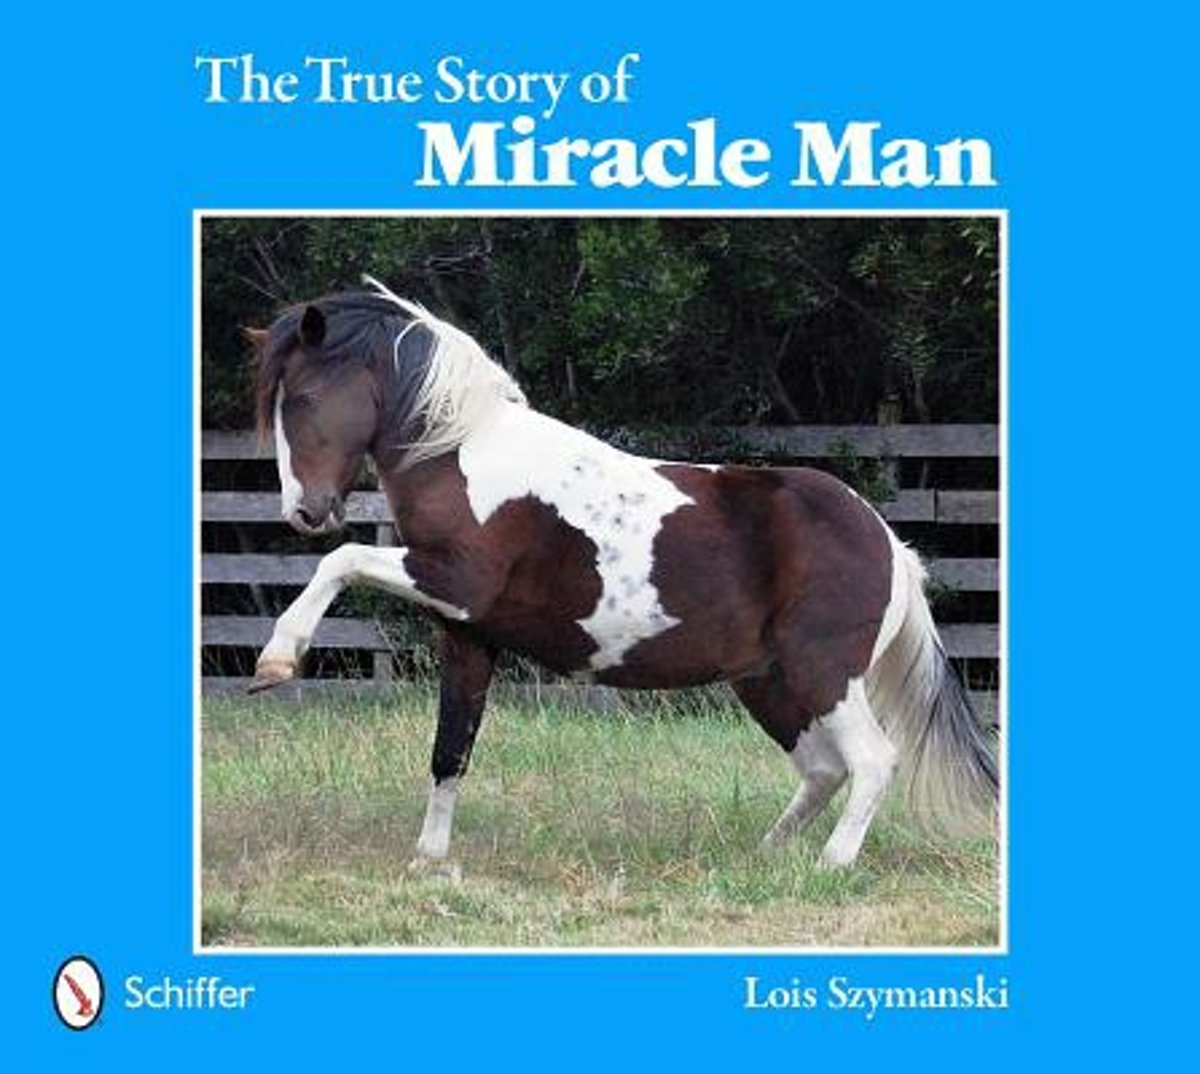 The True Story of Miracle Man